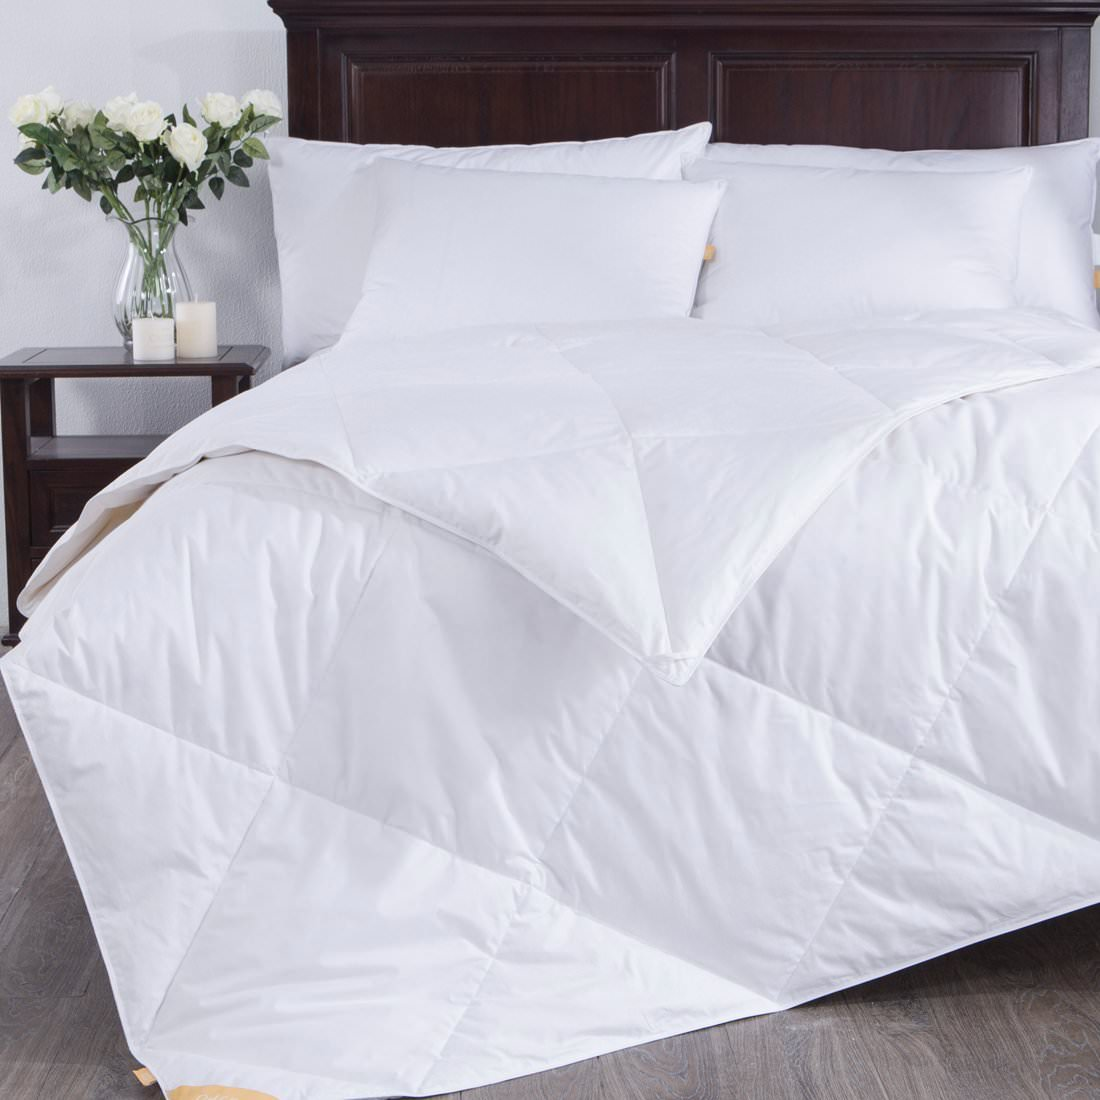 Puredown Lightweight White Goose Down Blend Comforter Duvet Insert 100% Cotton Fabric, King Size, White